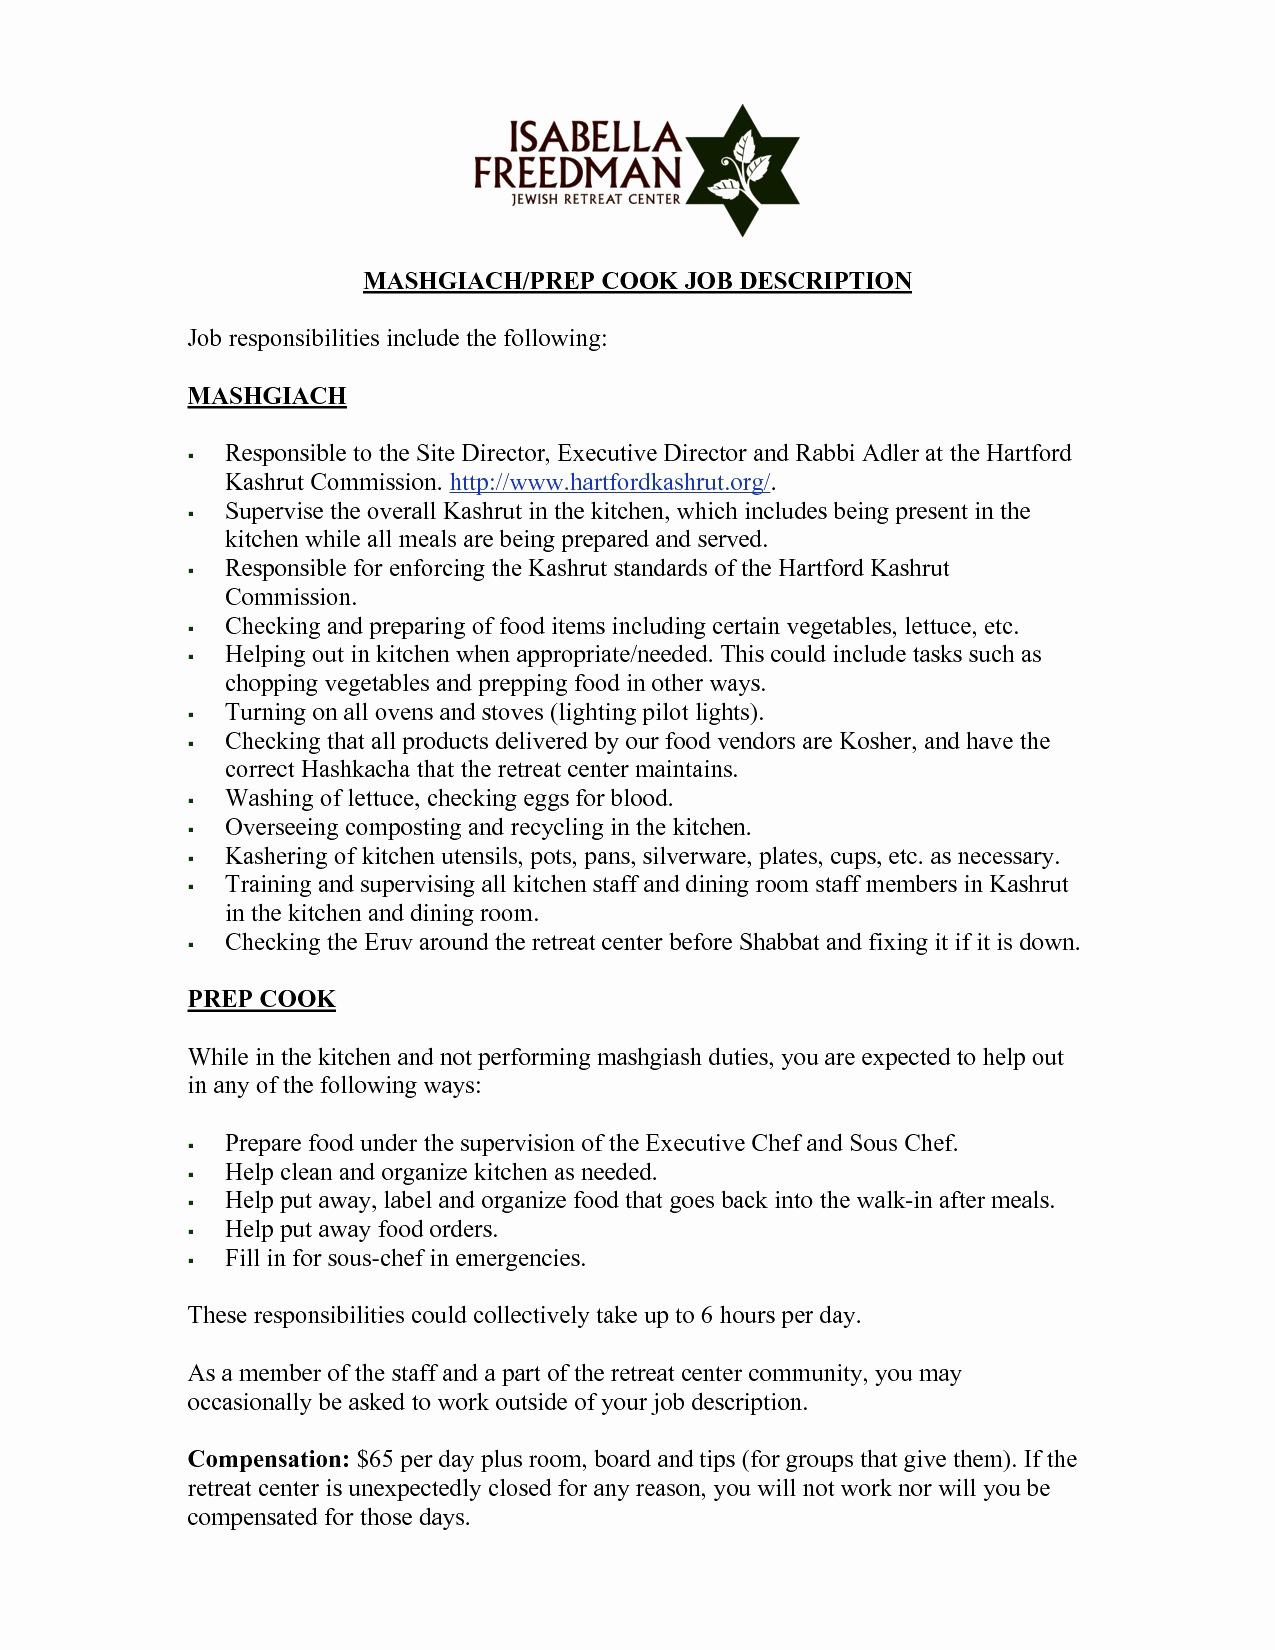 Professional Cover Letter Template - Simple Job Resume Templates Luxury Resume and Cover Letter Template